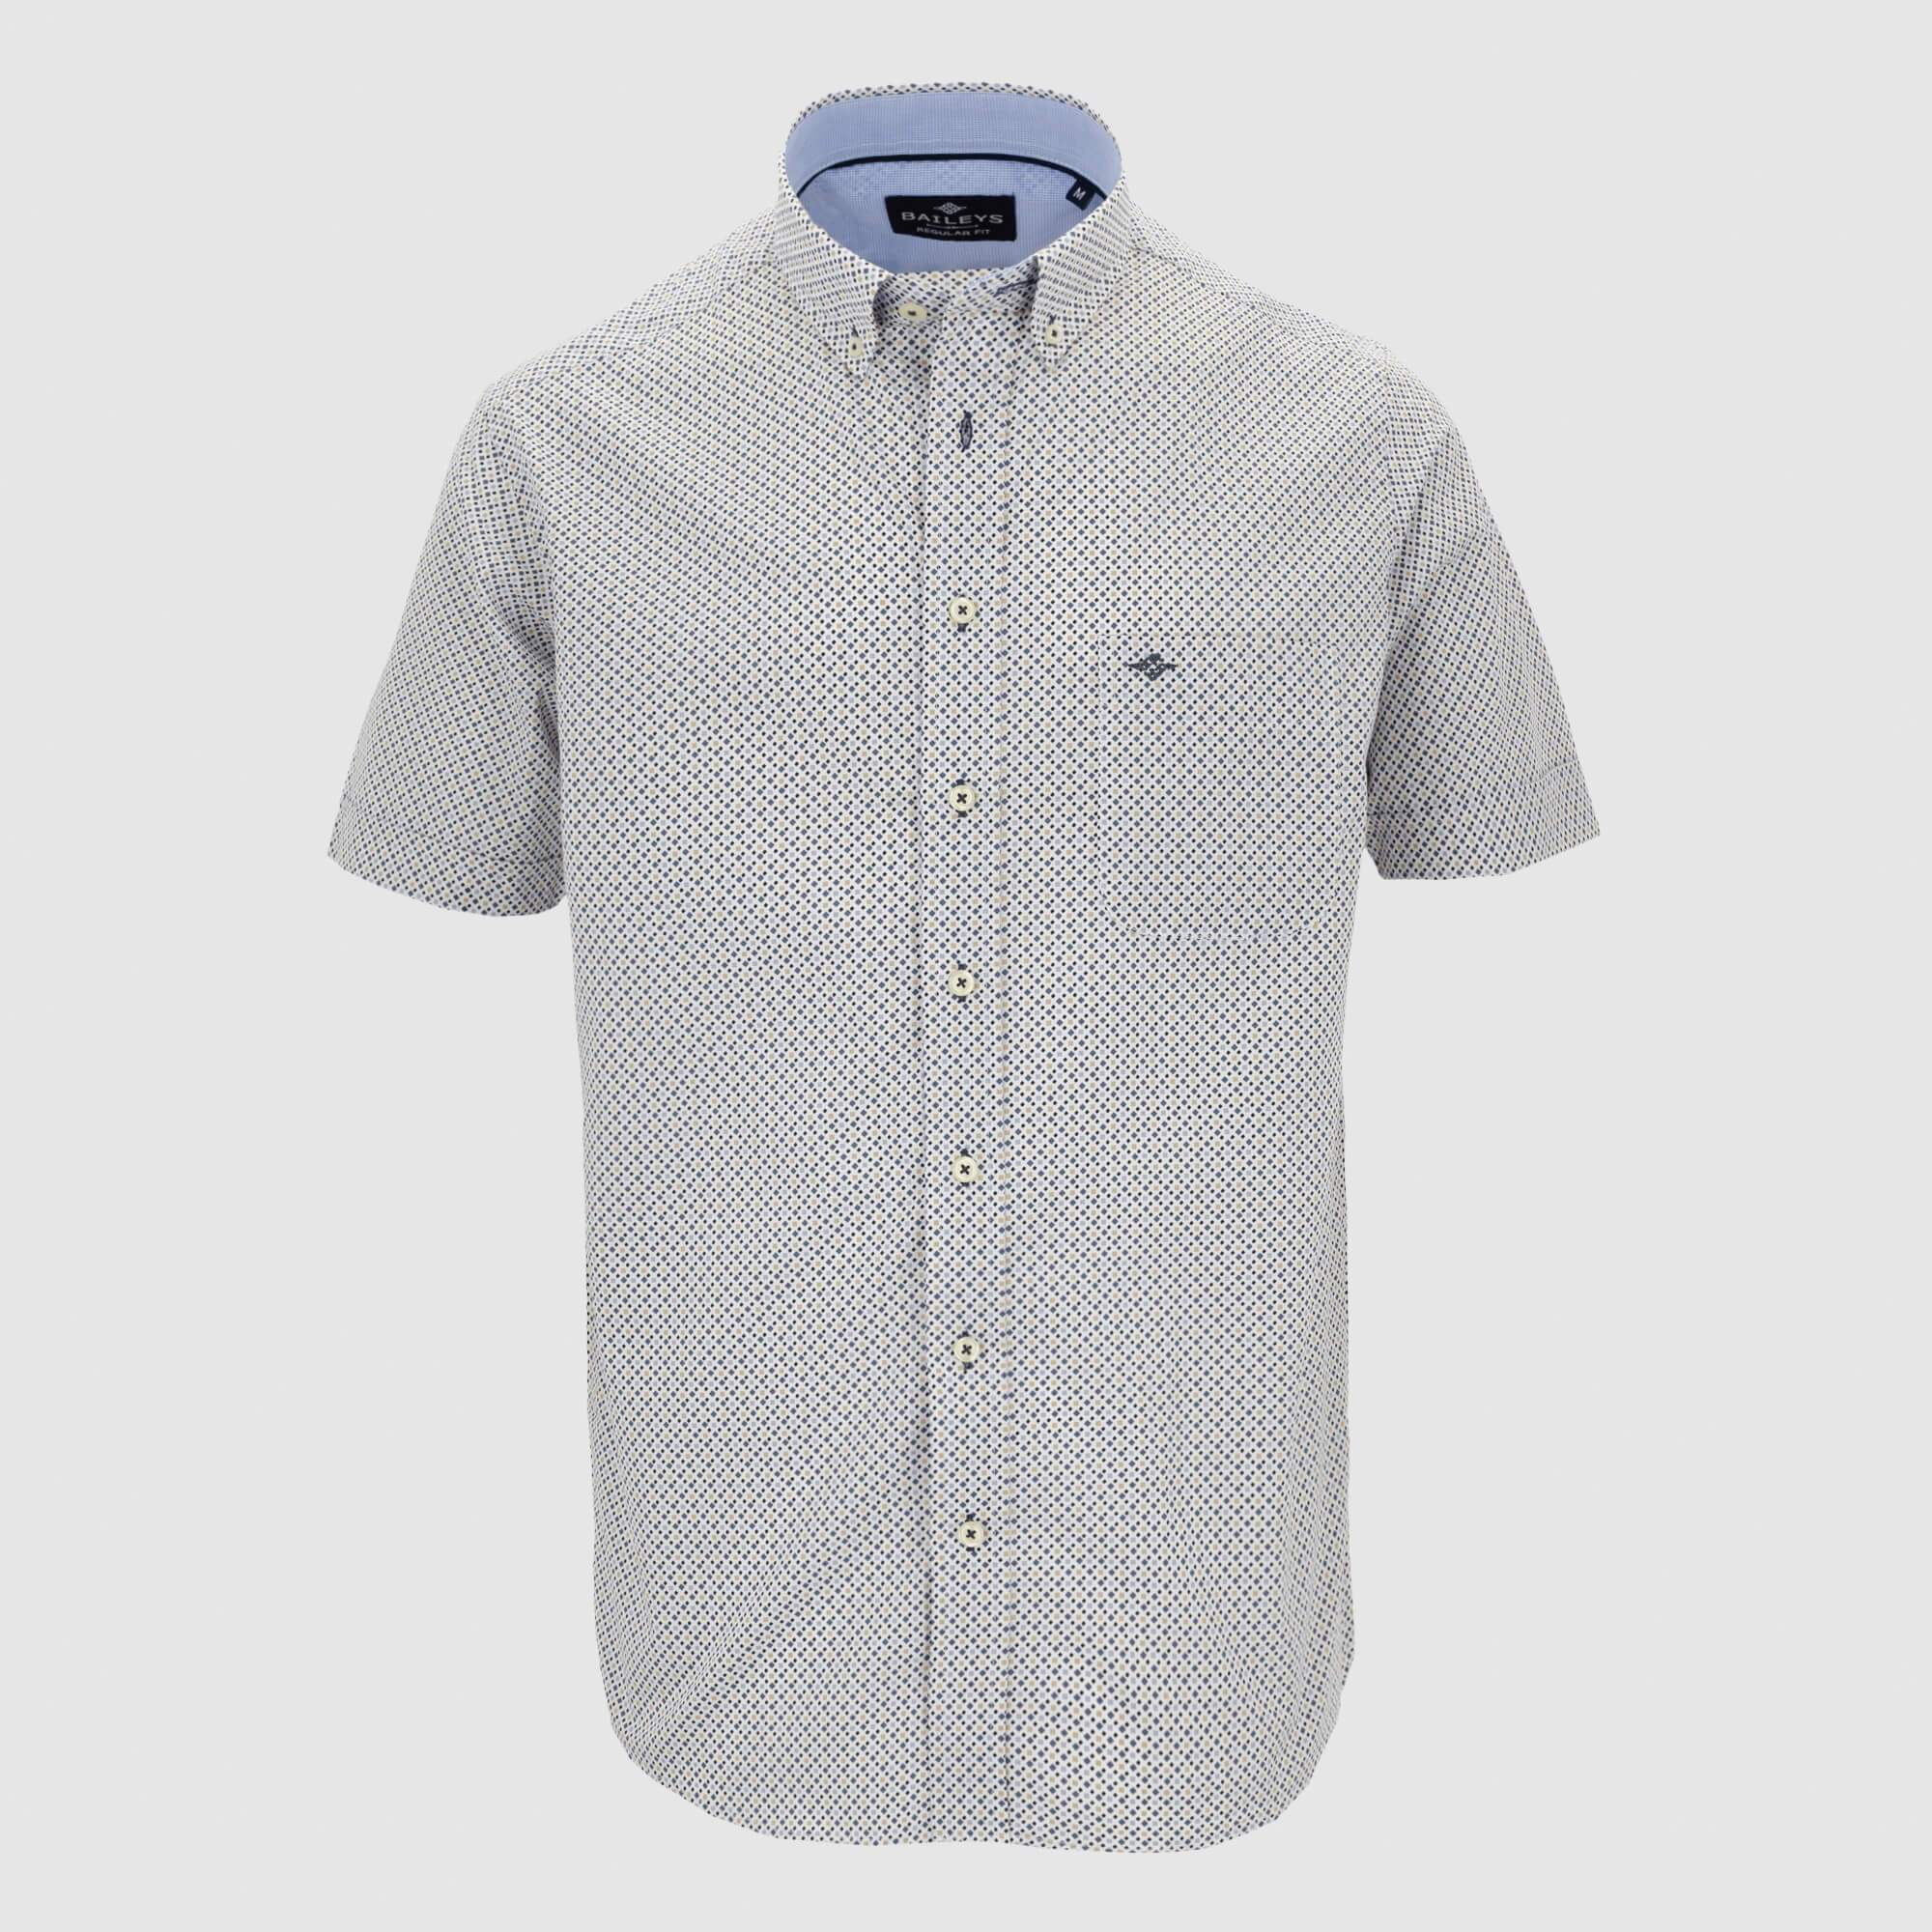 Camisa estampada manga corta regular fit 106698